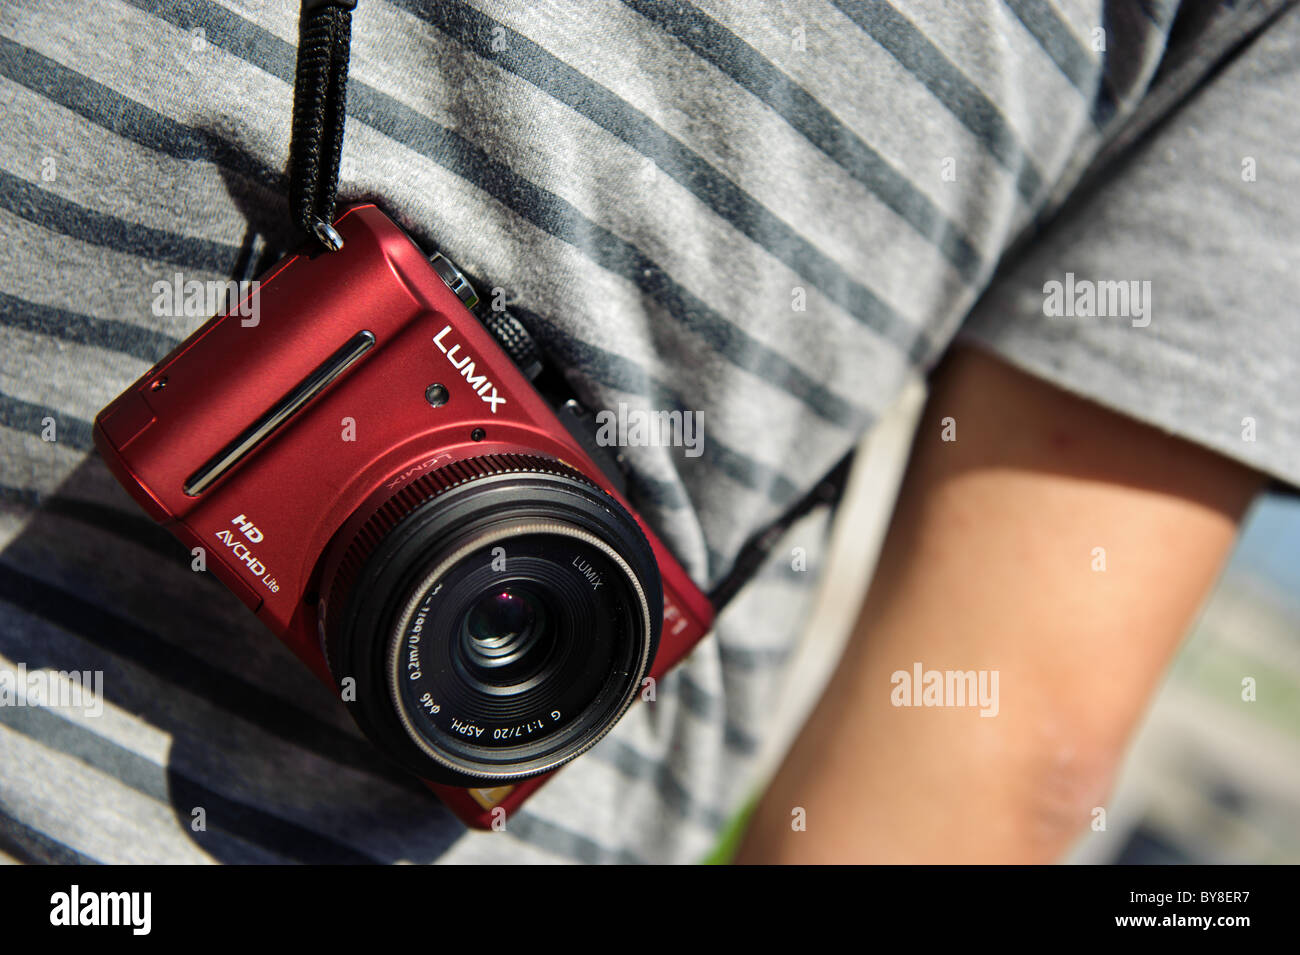 Photographer with a Lumix red camera - Stock Image